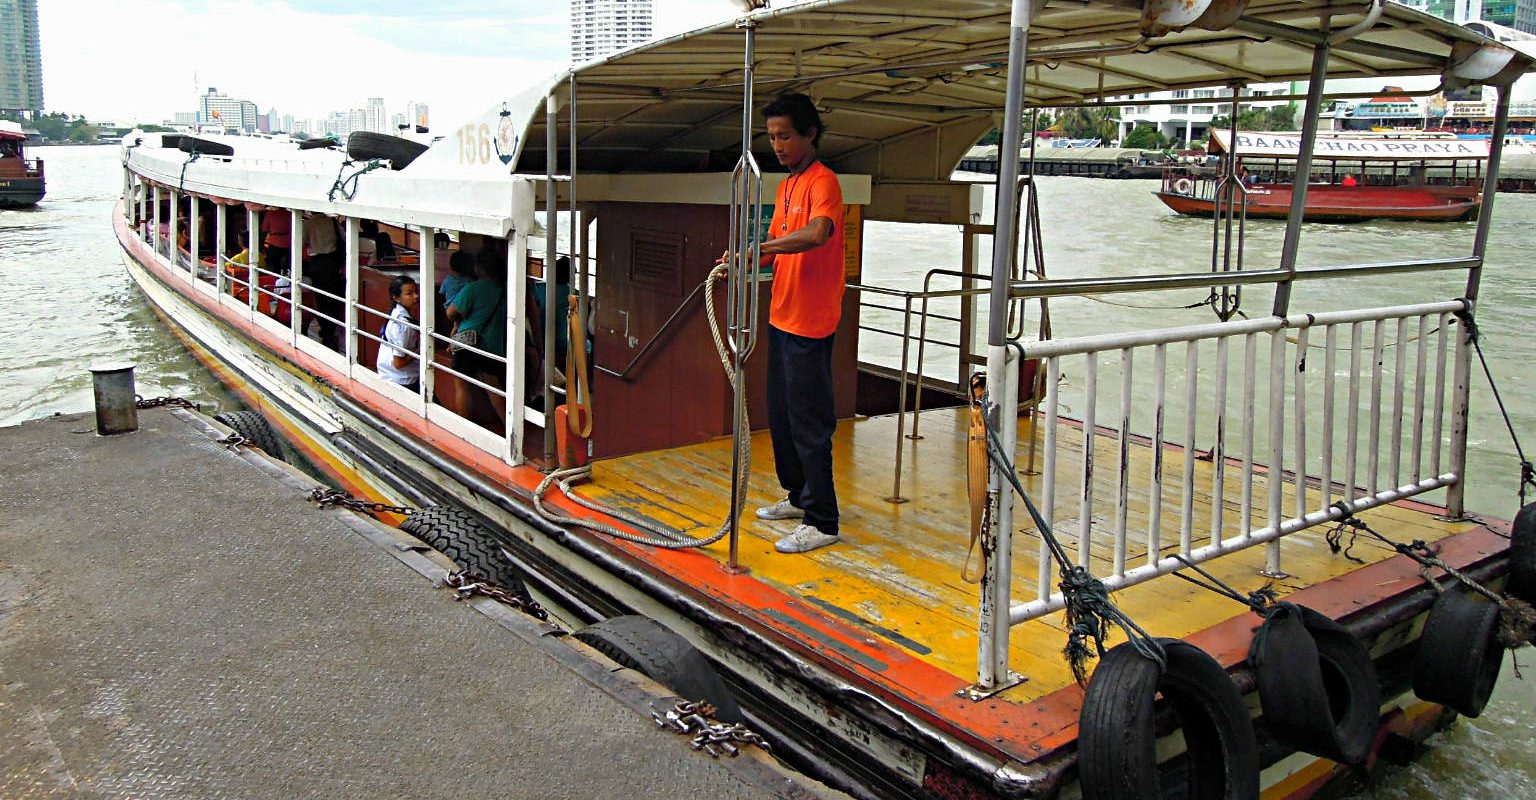 Boat moored at the Chao Phraya River Bangkok, Thailand